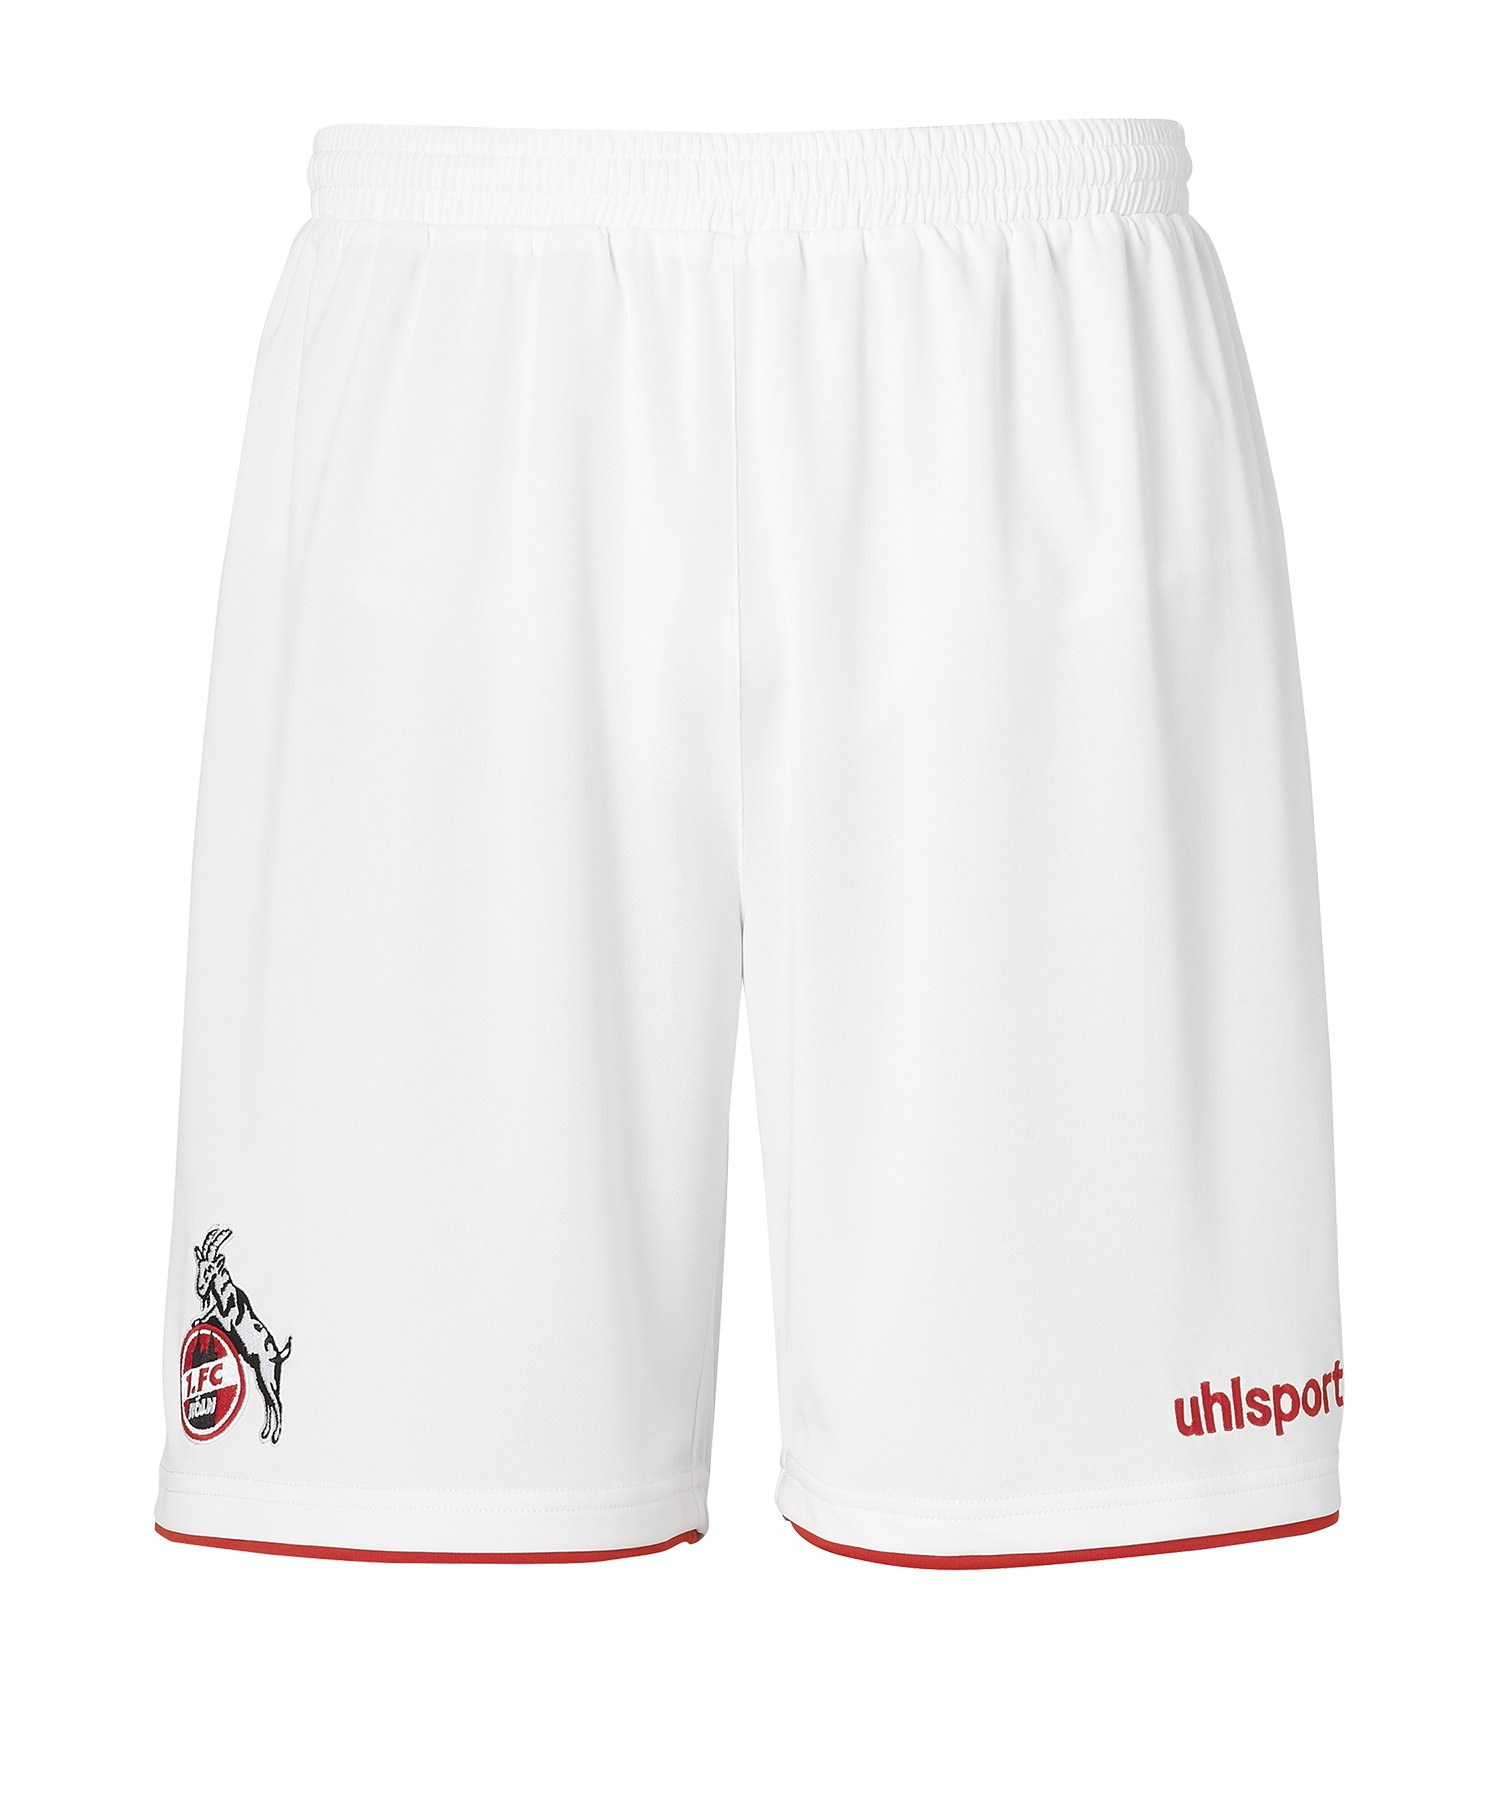 Uhlsport 1. FC Köln Short Home 19/20 Kids Weiss - weiss